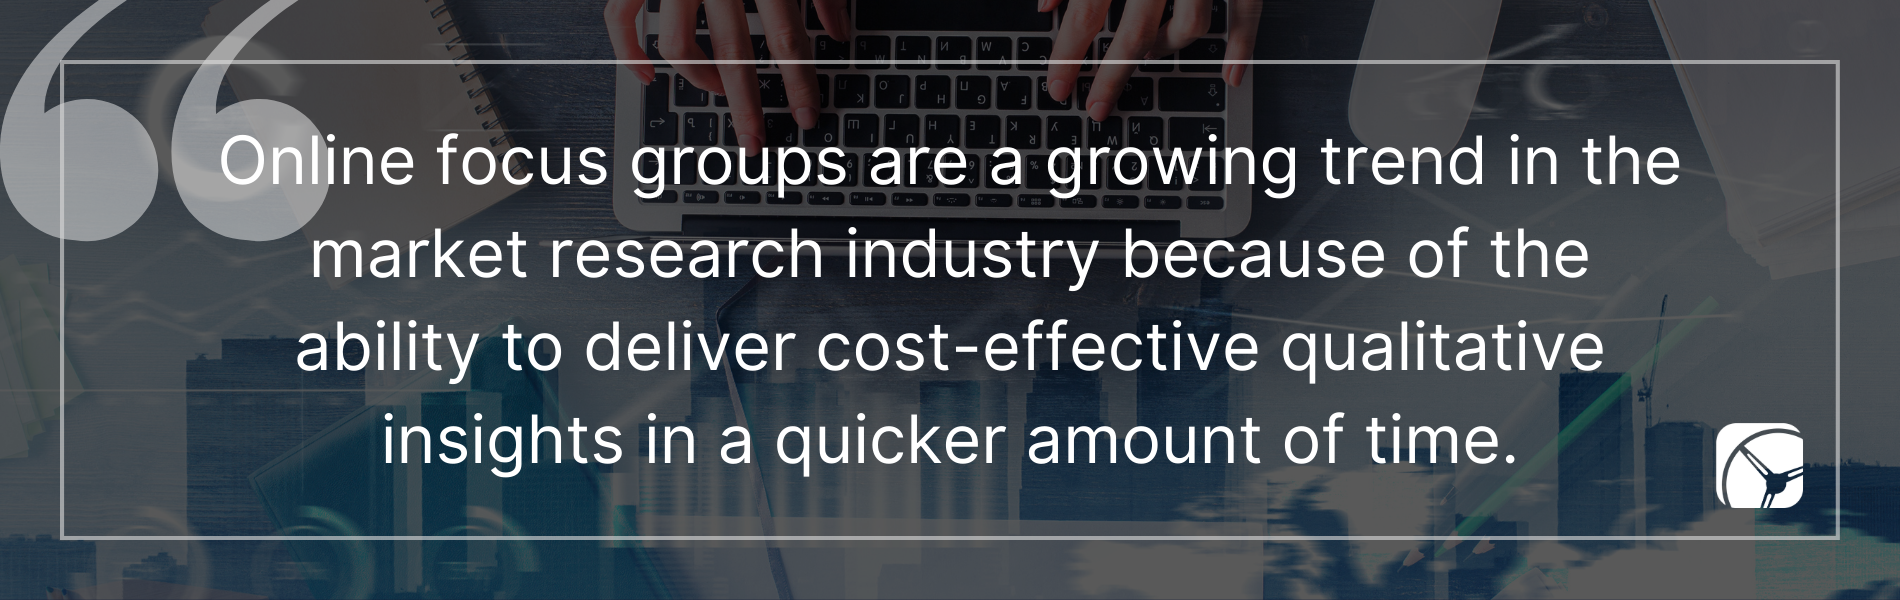 Online focus groups are a growing trend in the market research industry because of the ability to deliver cost-effective qualitative insights in a shorter amount of time.